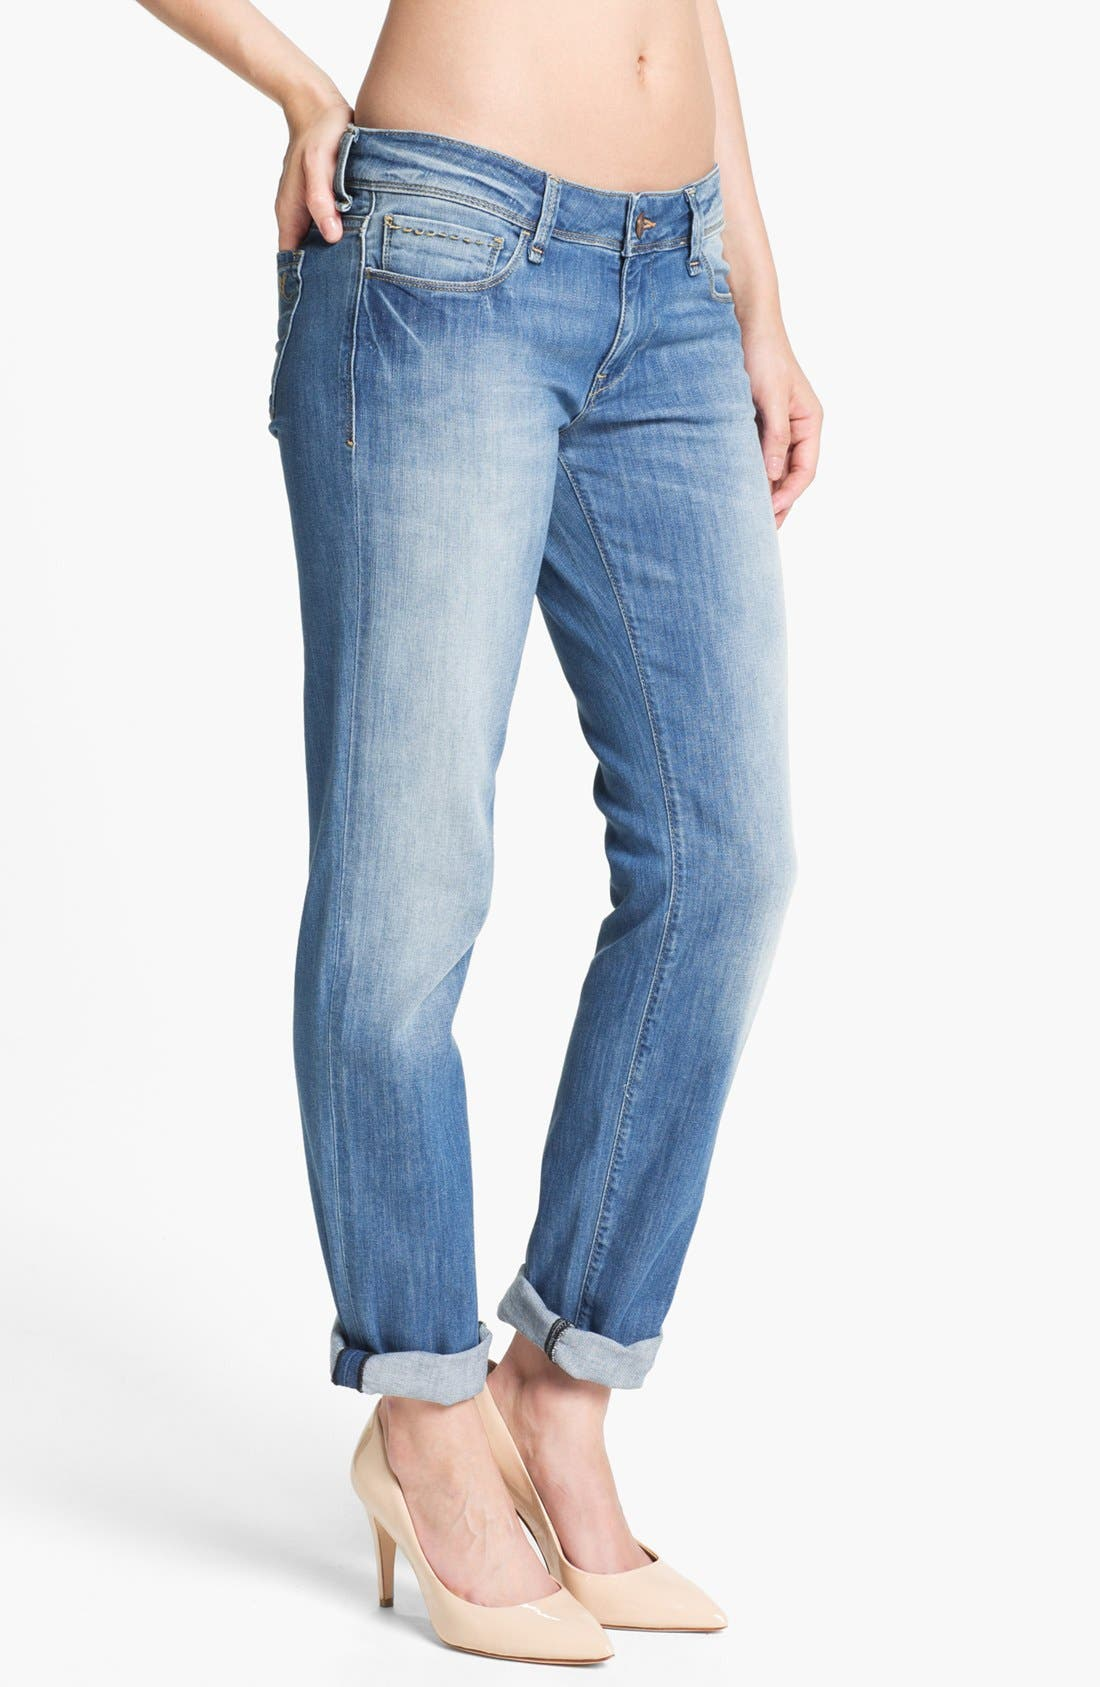 Alternate Image 1 Selected - Mavi Jeans 'Emma' Slim Boyfriend Jeans (Summer Nolita)